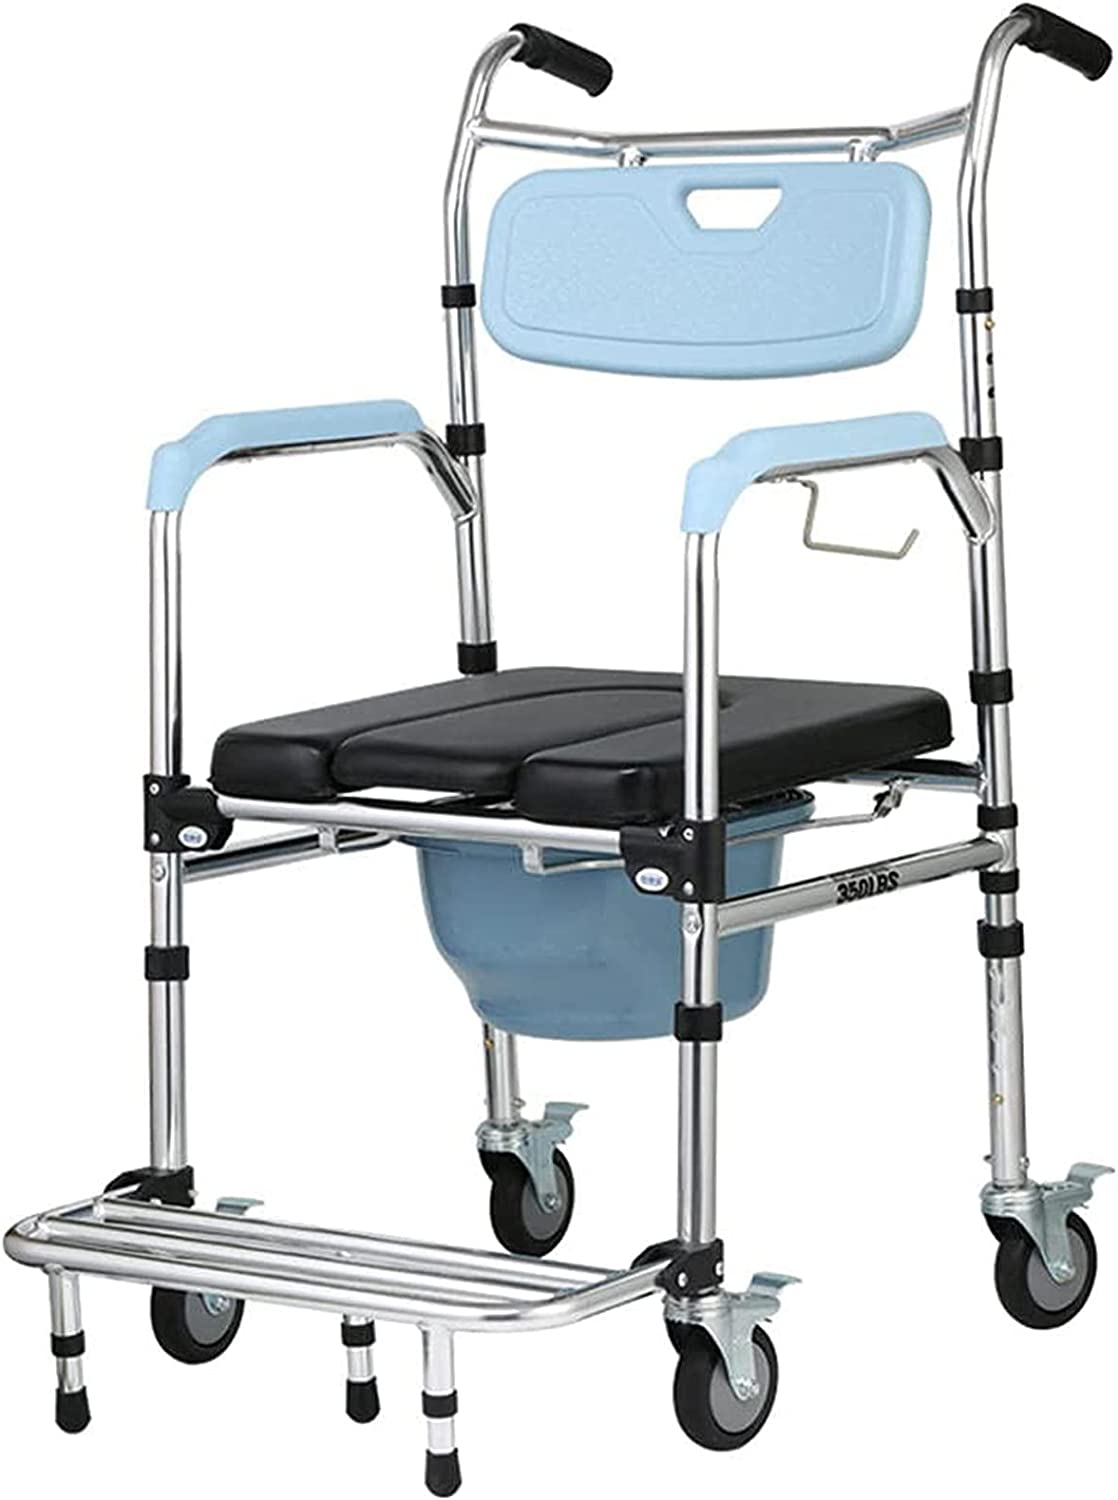 FC-LY 4 in 1 Multifunctional Aluminum Commode Wheeled Chair Arlington Mall Super sale period limited with